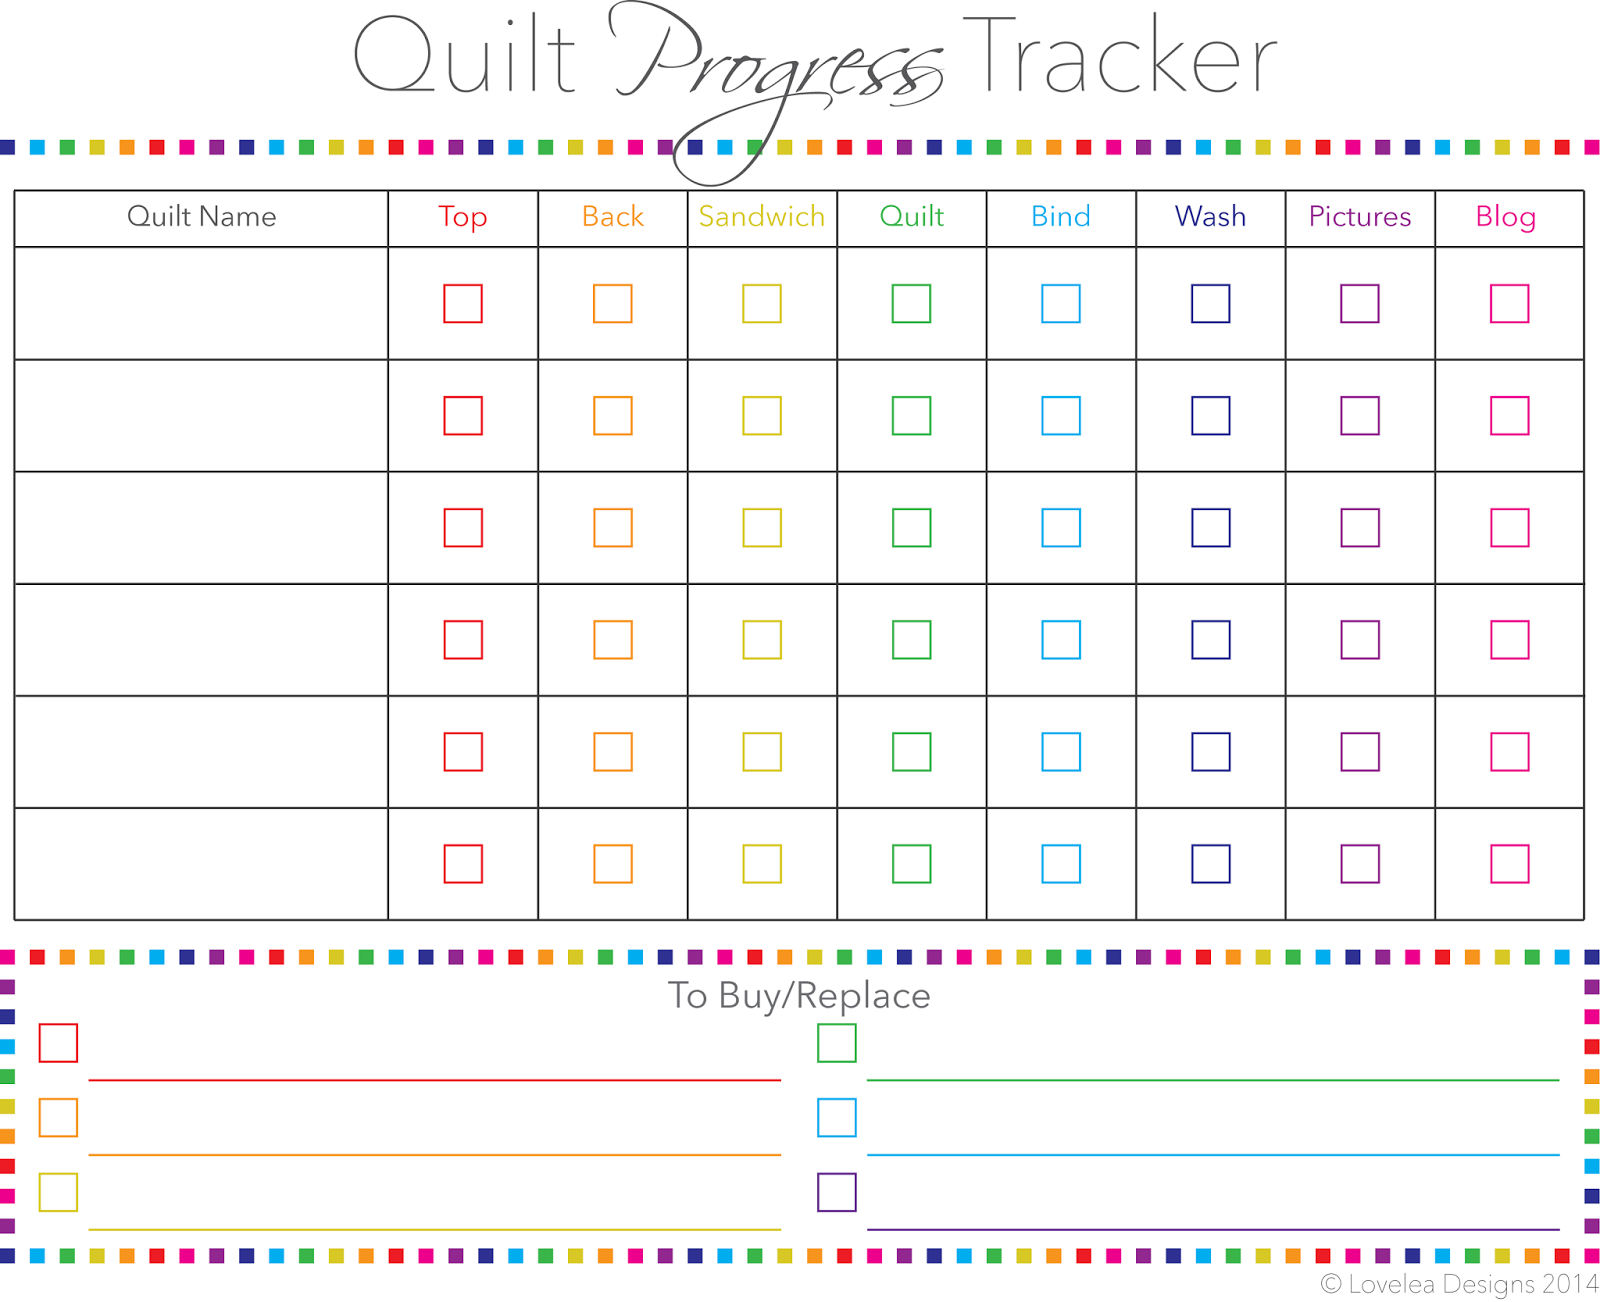 Quilt Progress Tracker Free Printable - such a cool idea ...